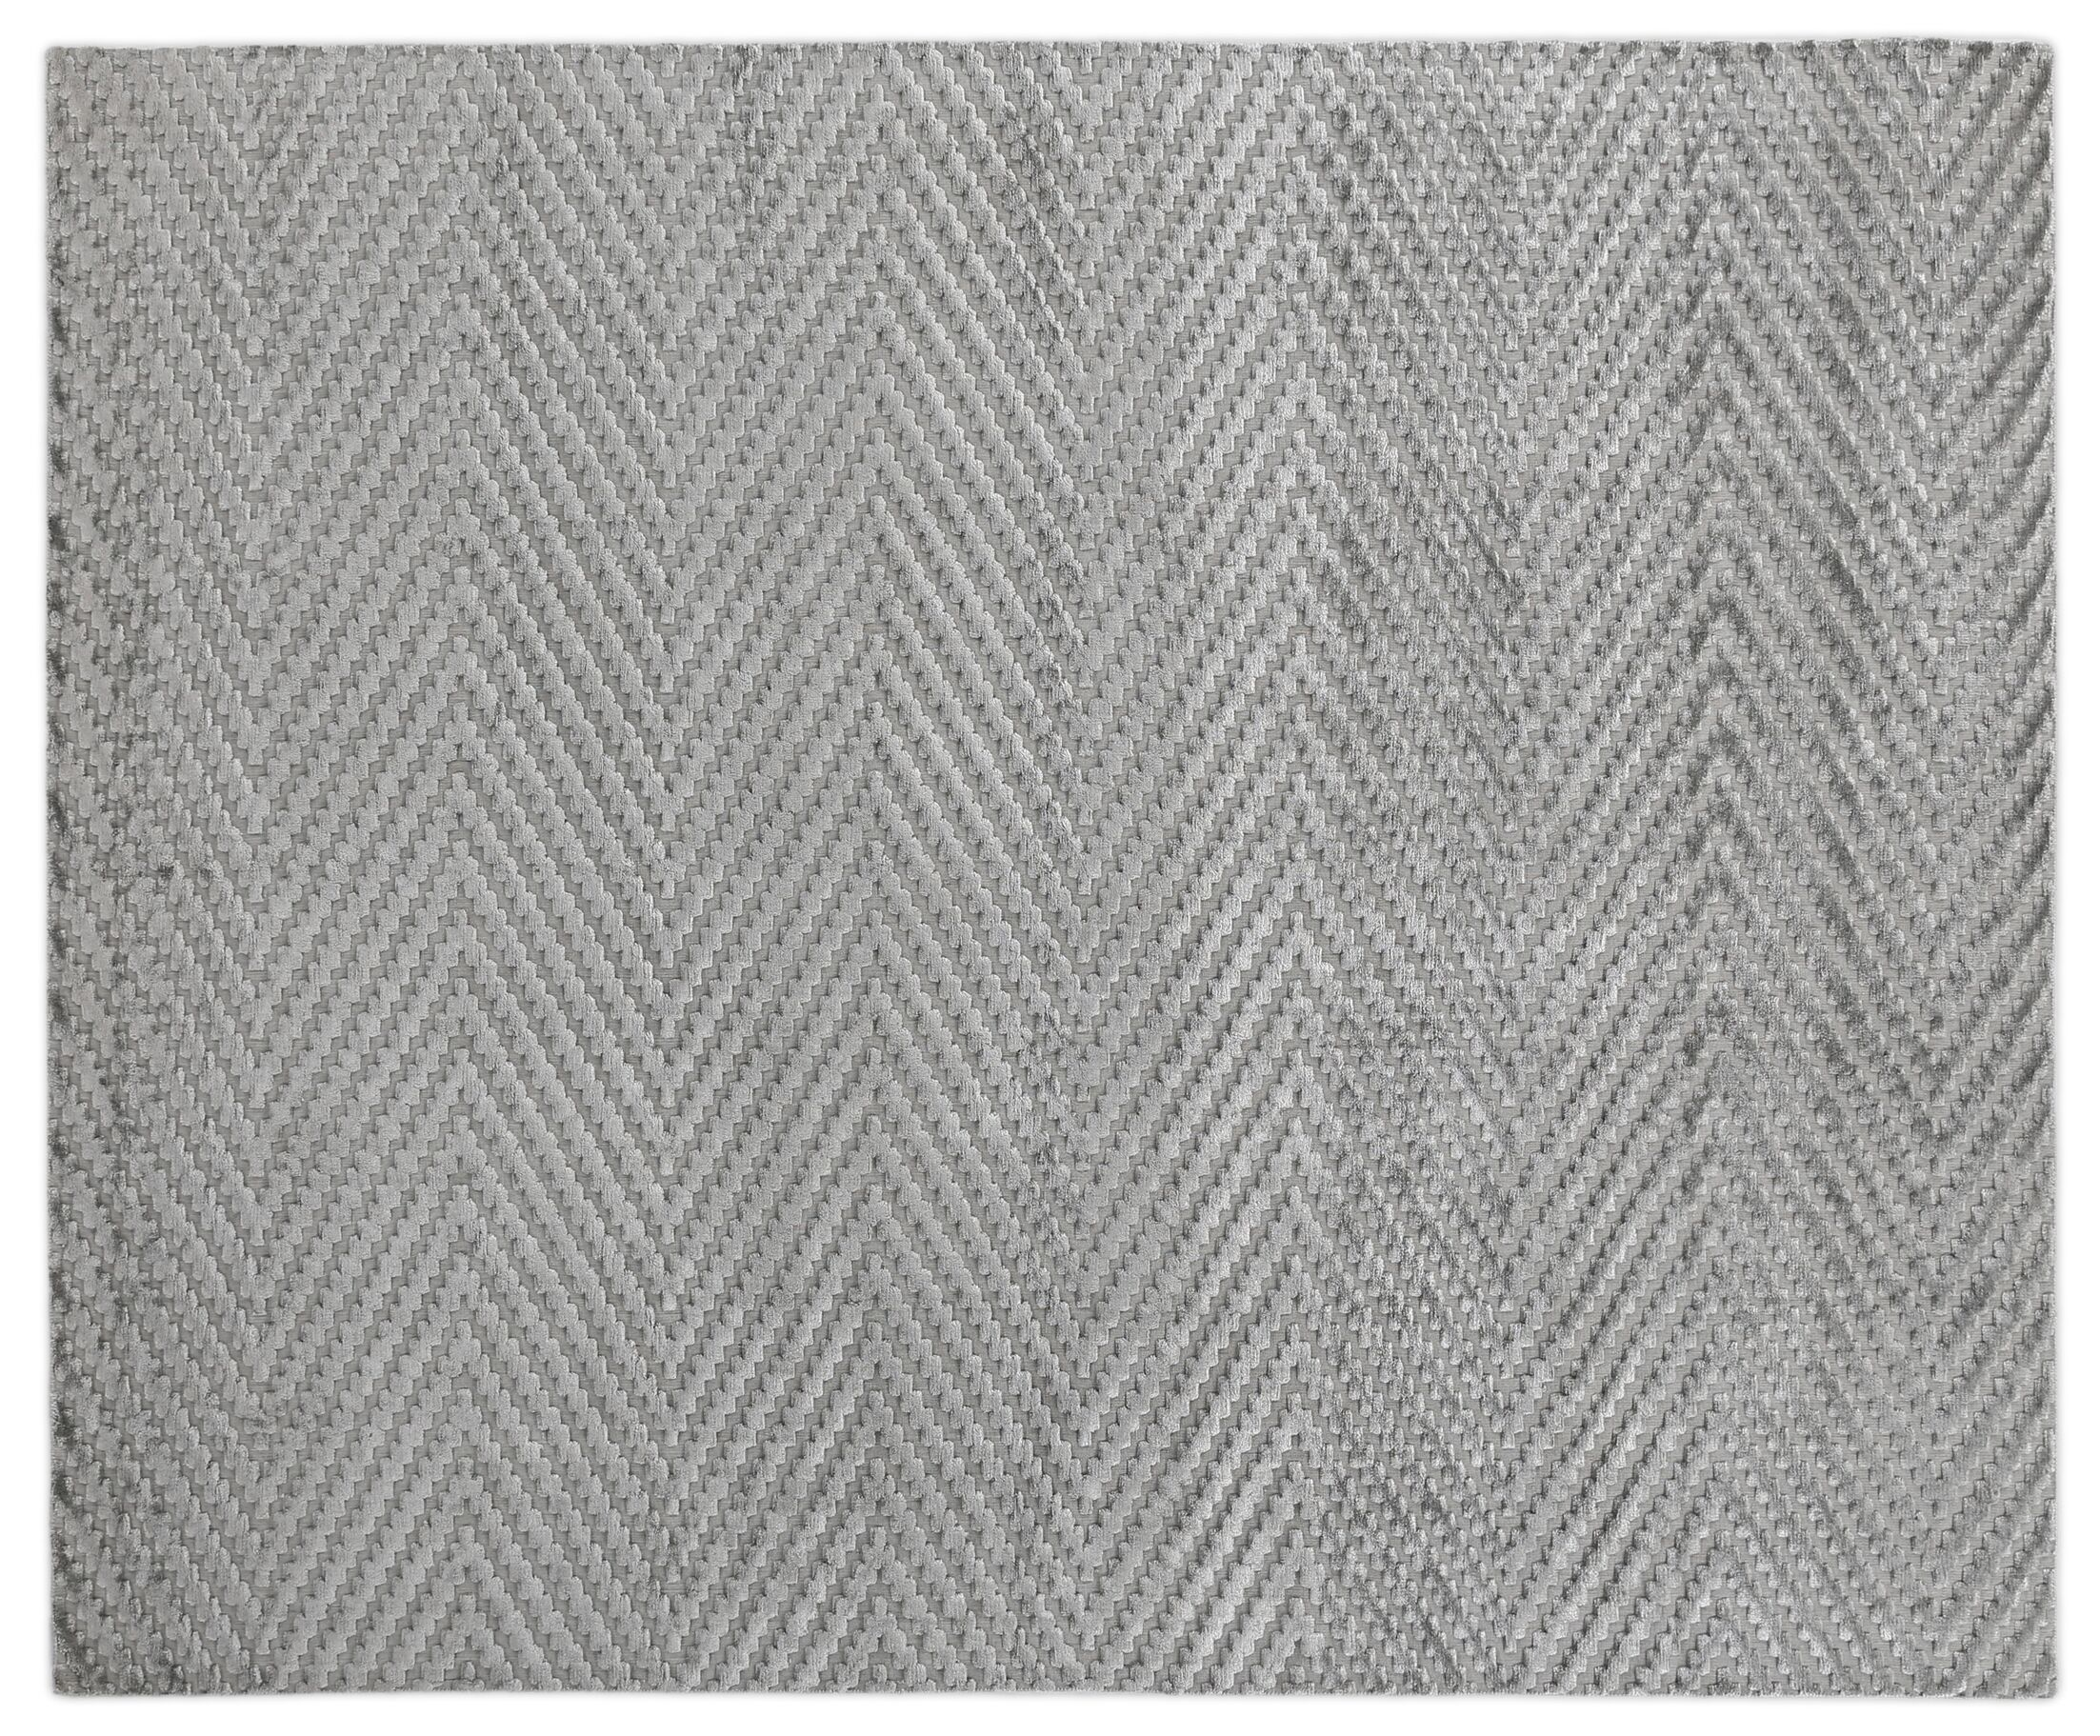 Kingsley Hand-Woven Gray Area Rug Rug Size: Rectangle 12' x 15'